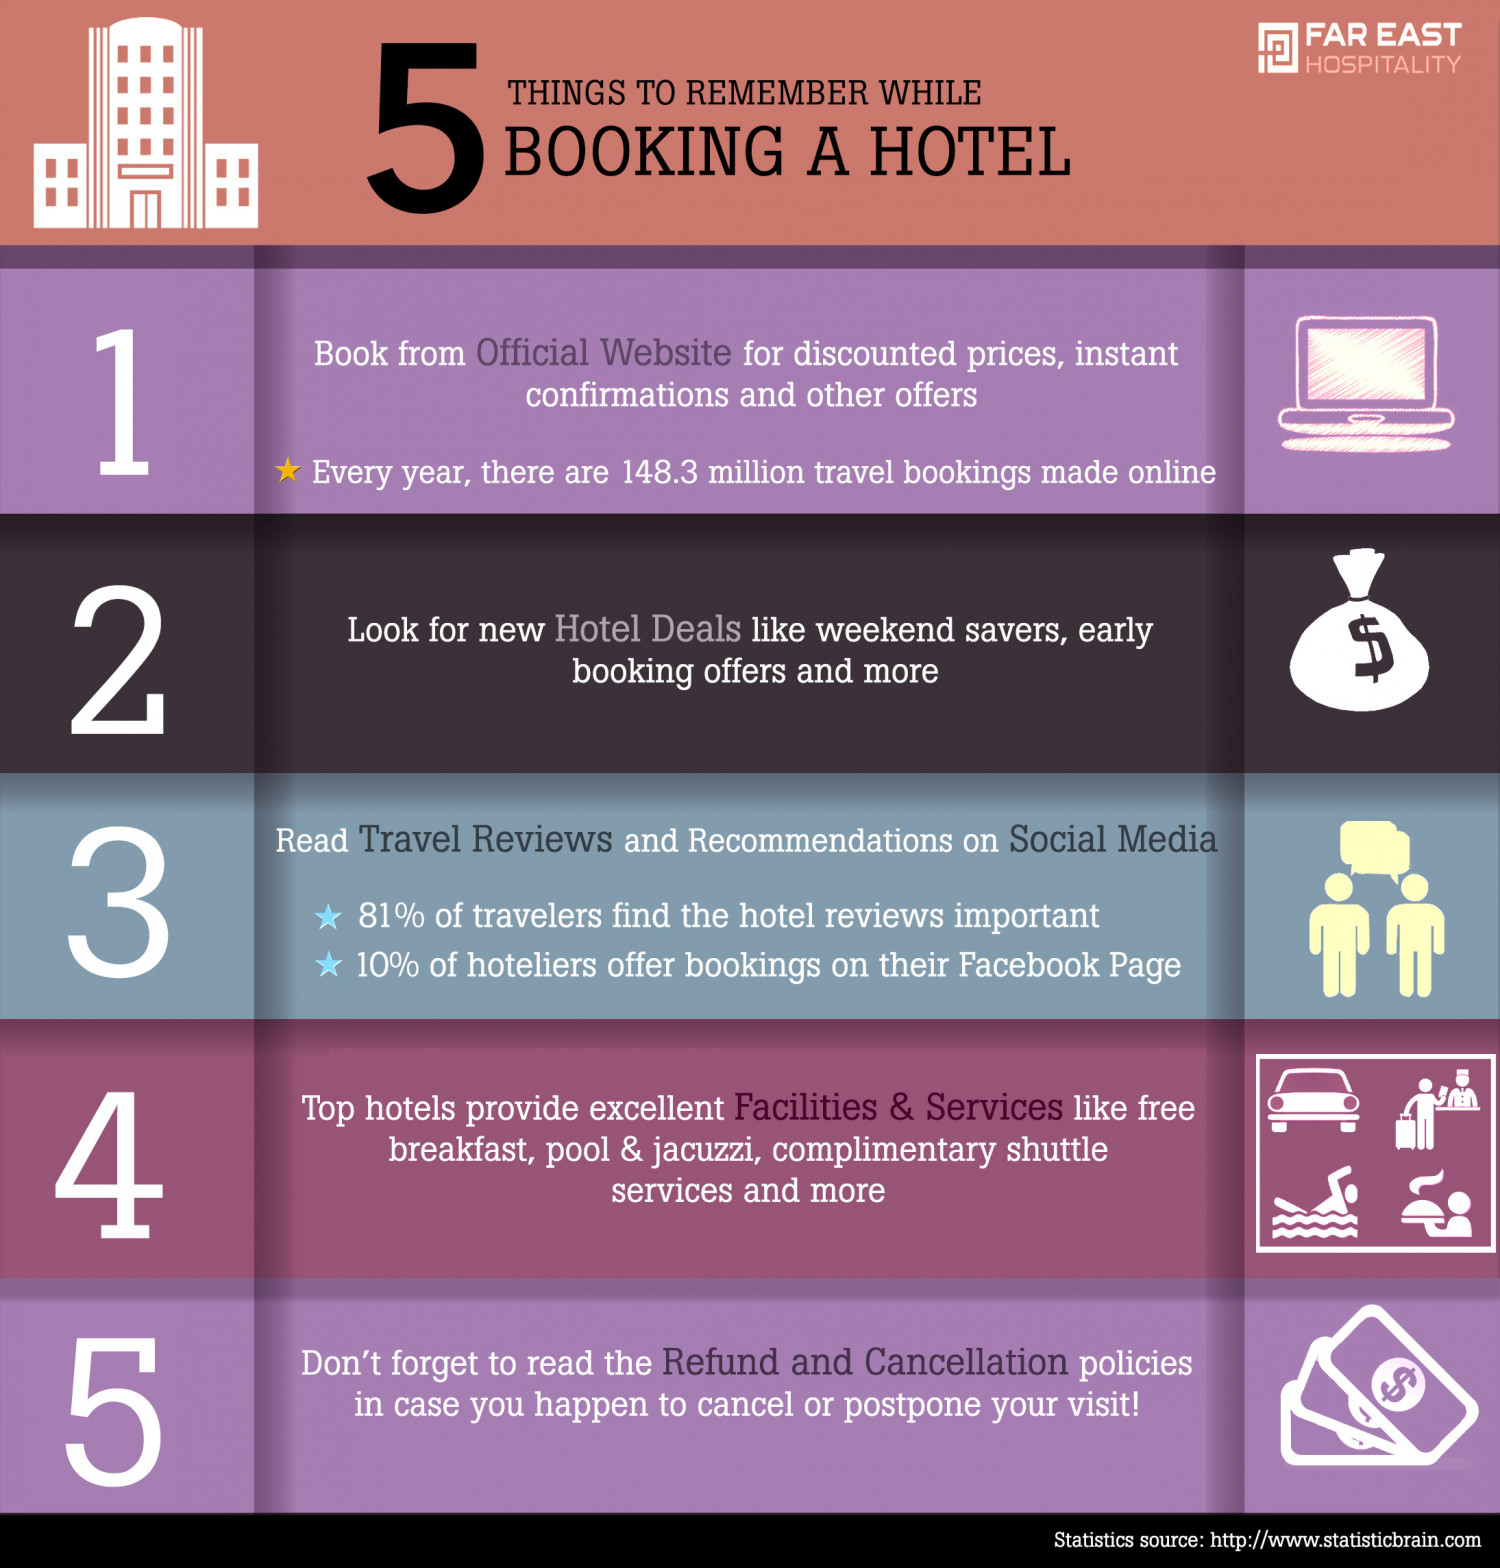 5 Things To Remember While Booking A Hotel Infographic